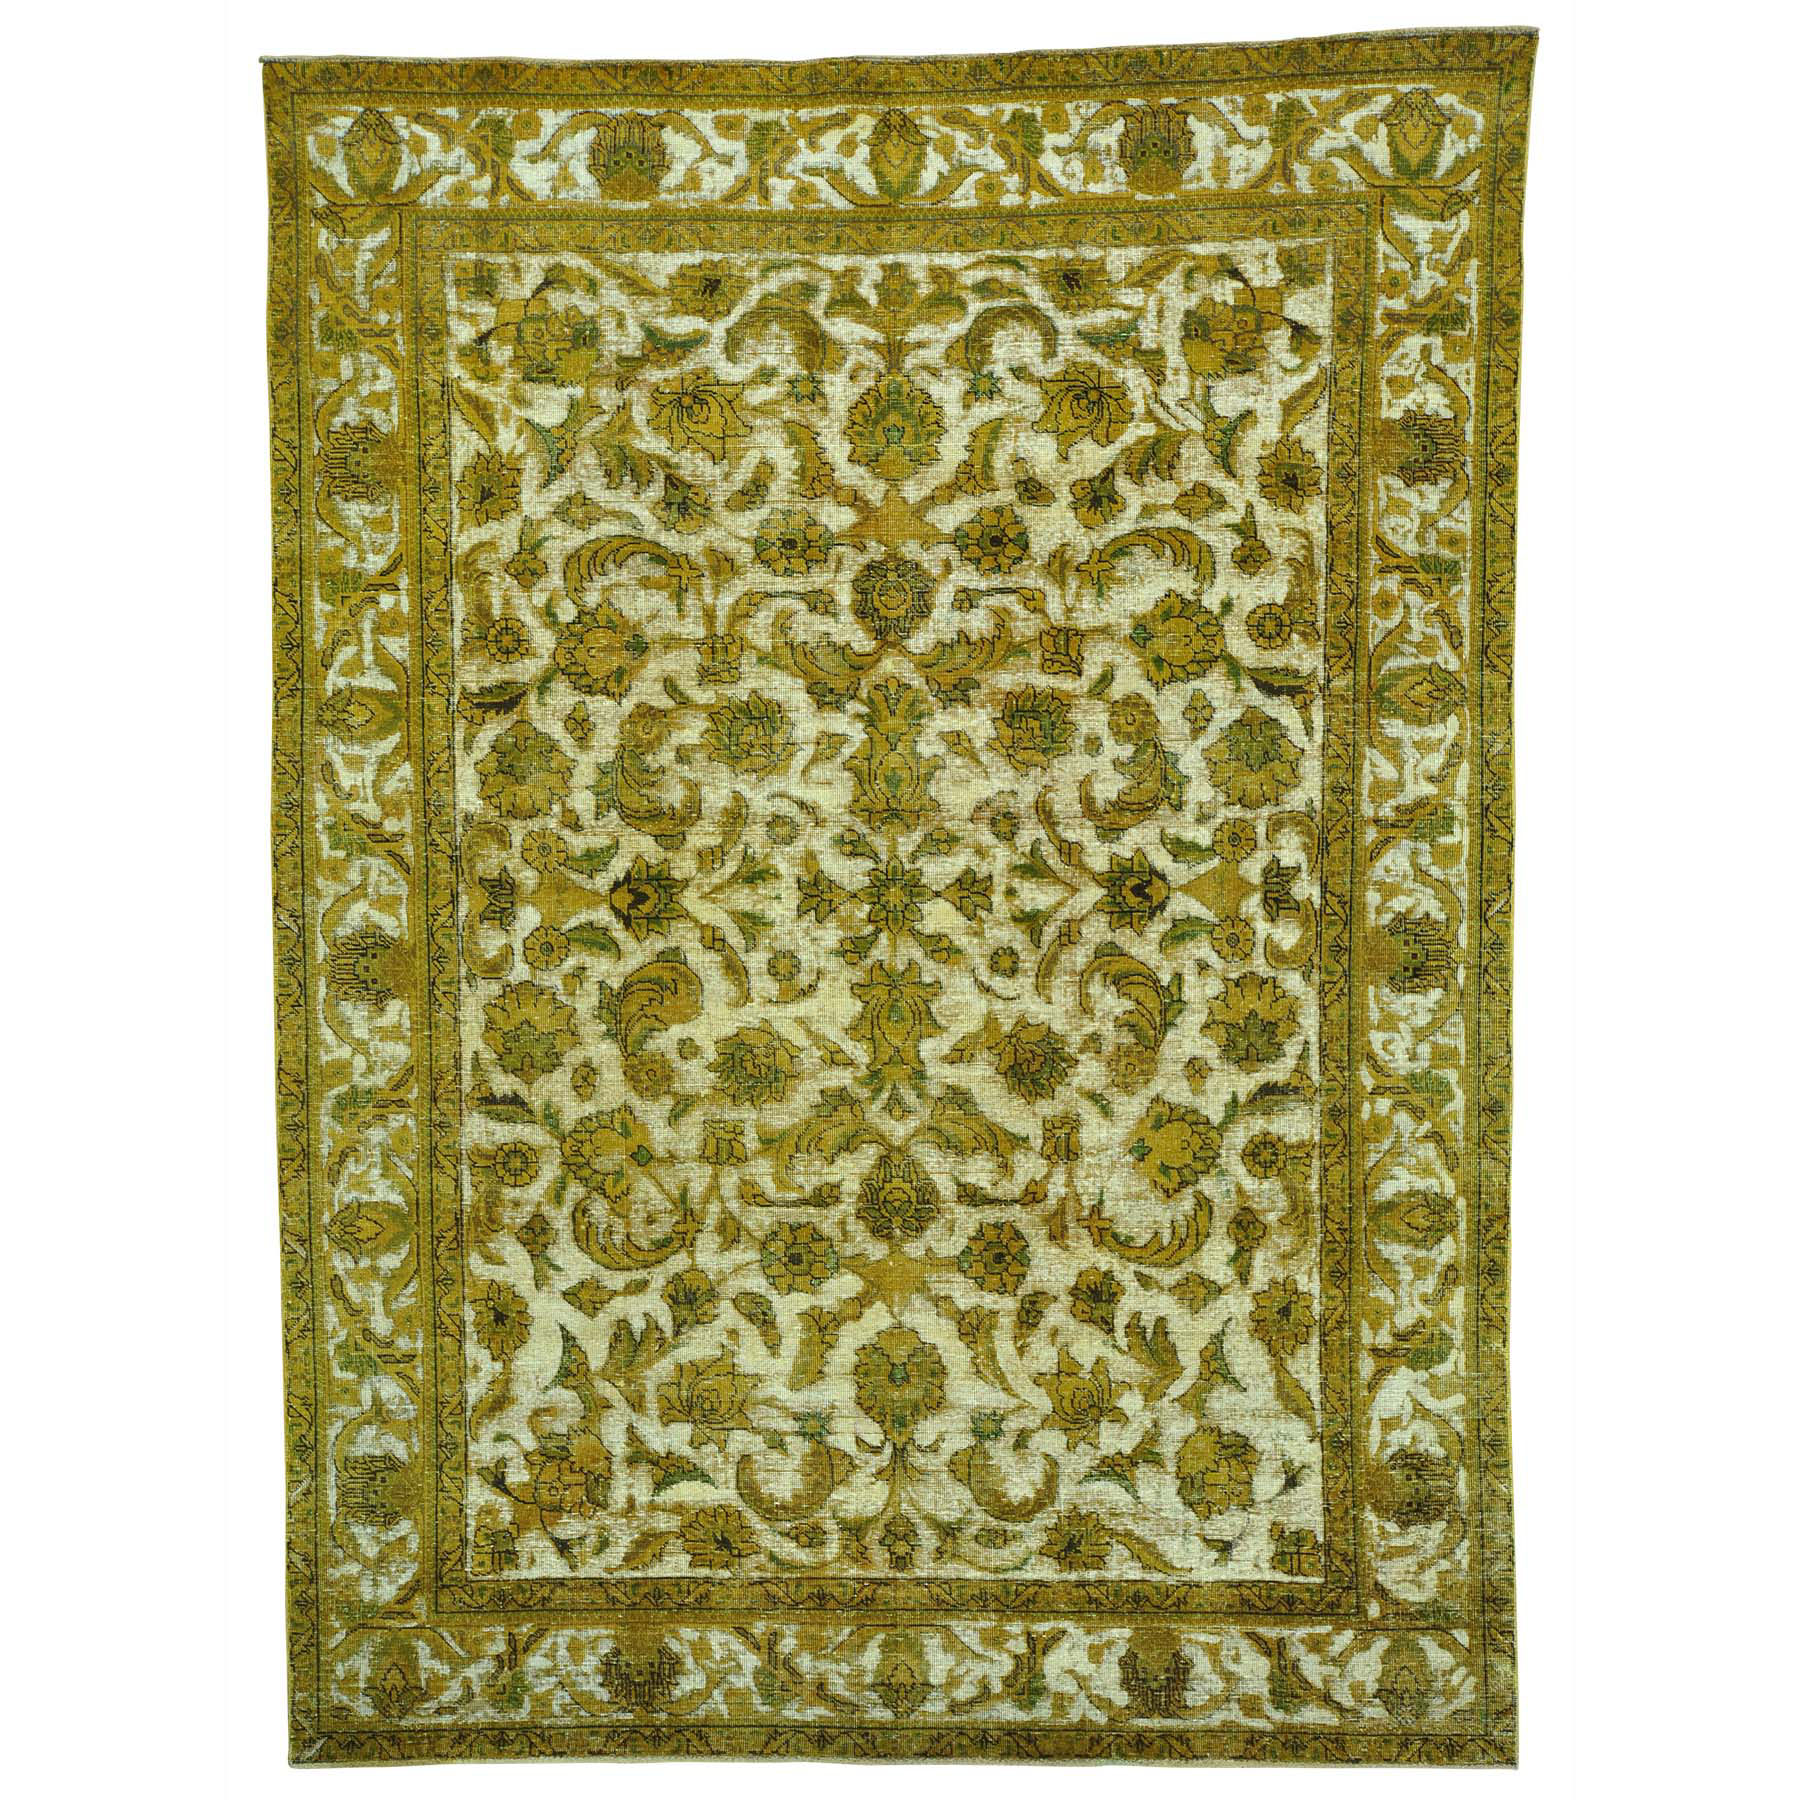 8'X11' Gold Overdyed Hand Knotted Persian Tabriz Barjasta Vintage Rug moabea7e